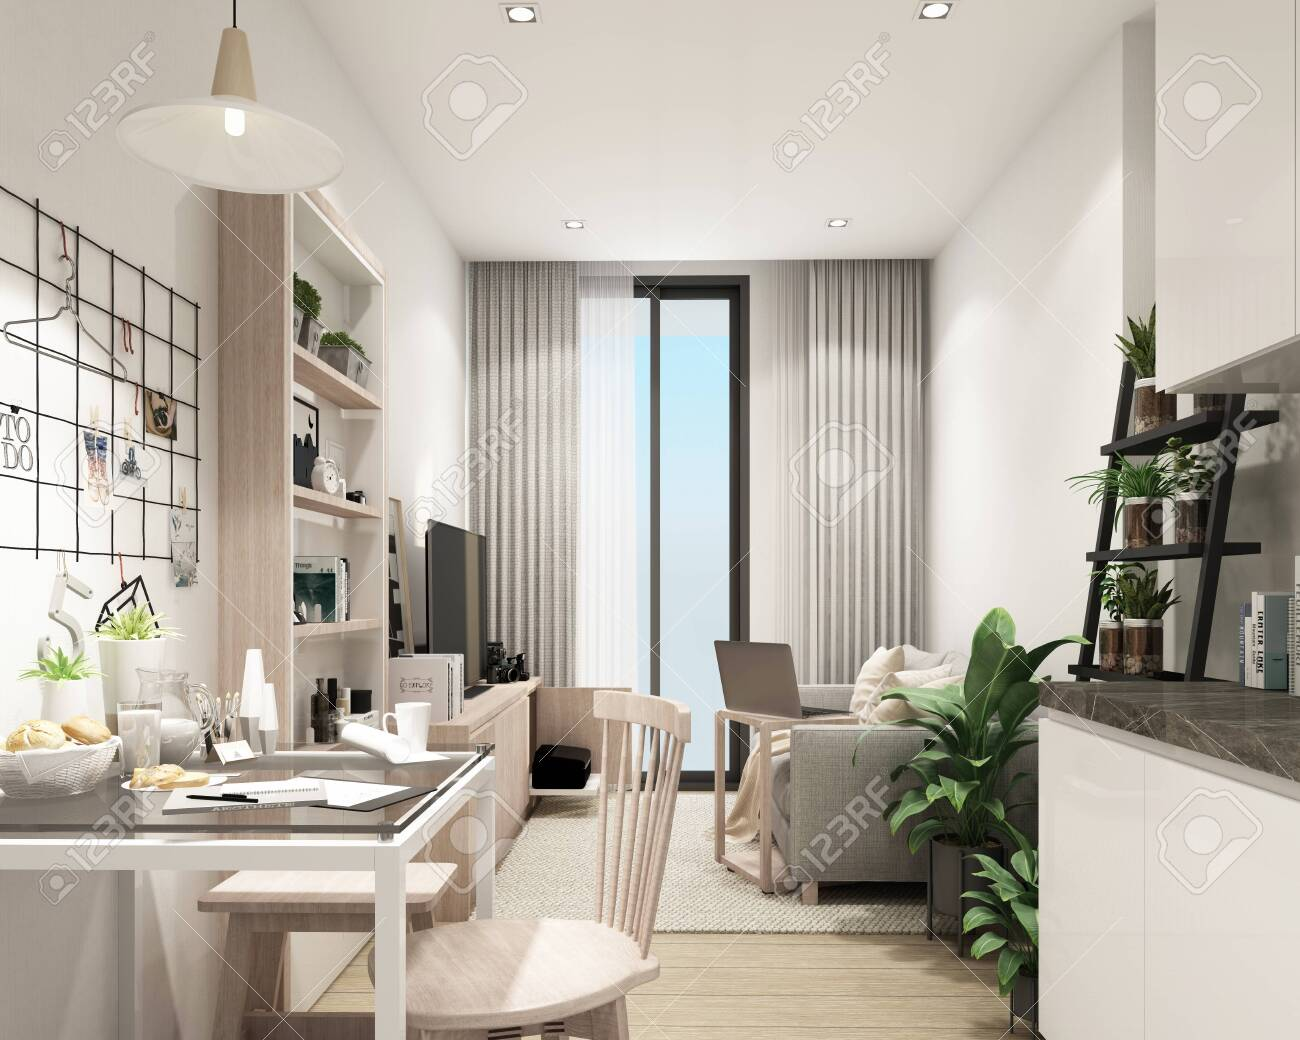 modern living room in condominium with modern contemporary style interior and wooder floor with furniture built in 3d rendering - 150511583